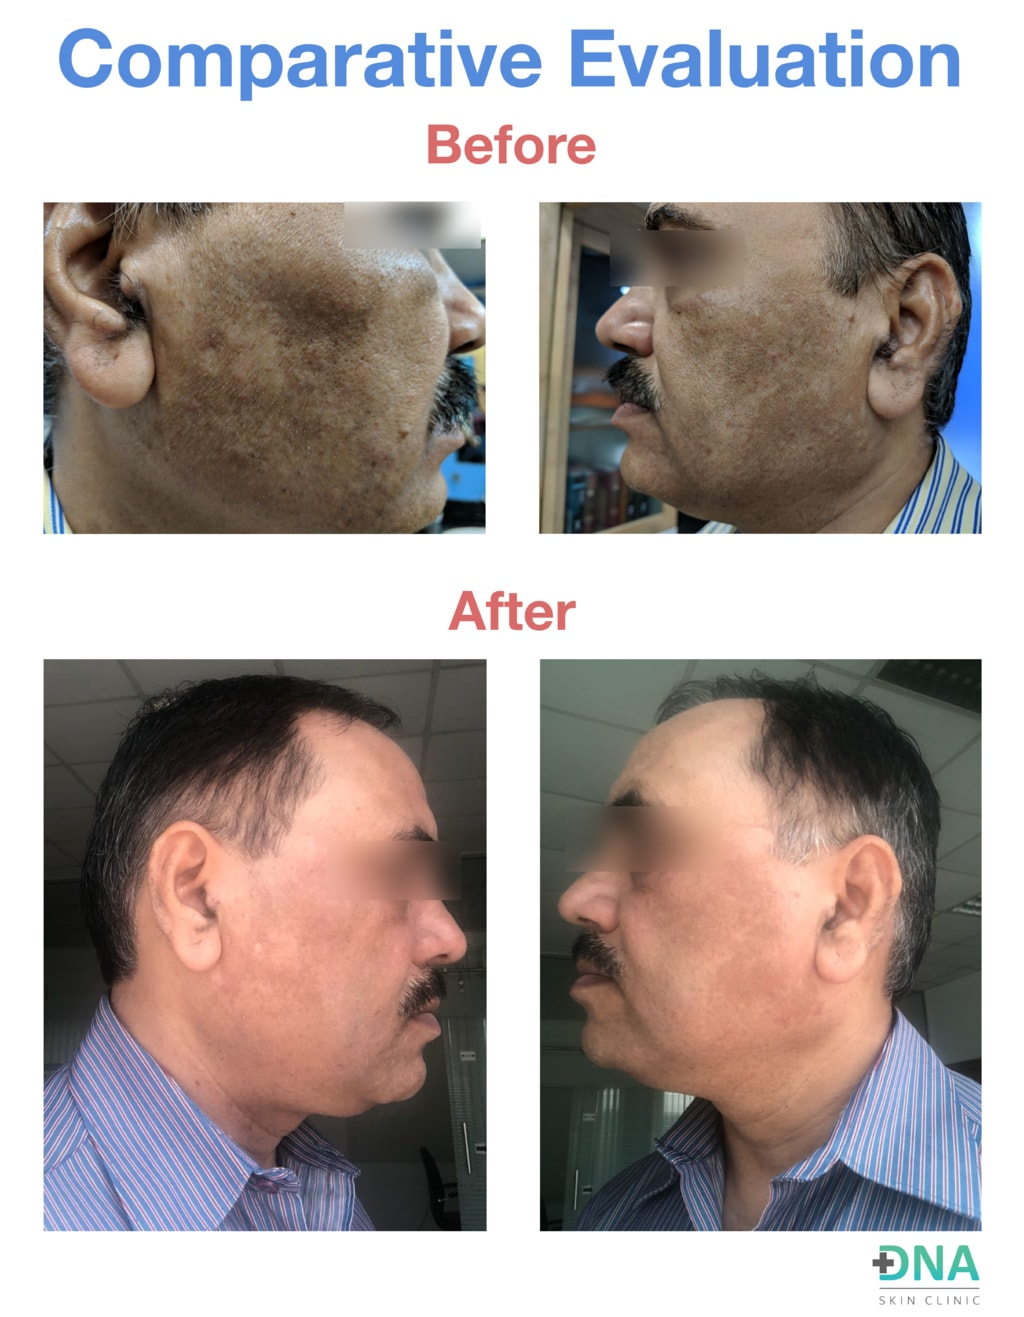 DNA Skin Clinic - Melasma via DNA Skin Clinic